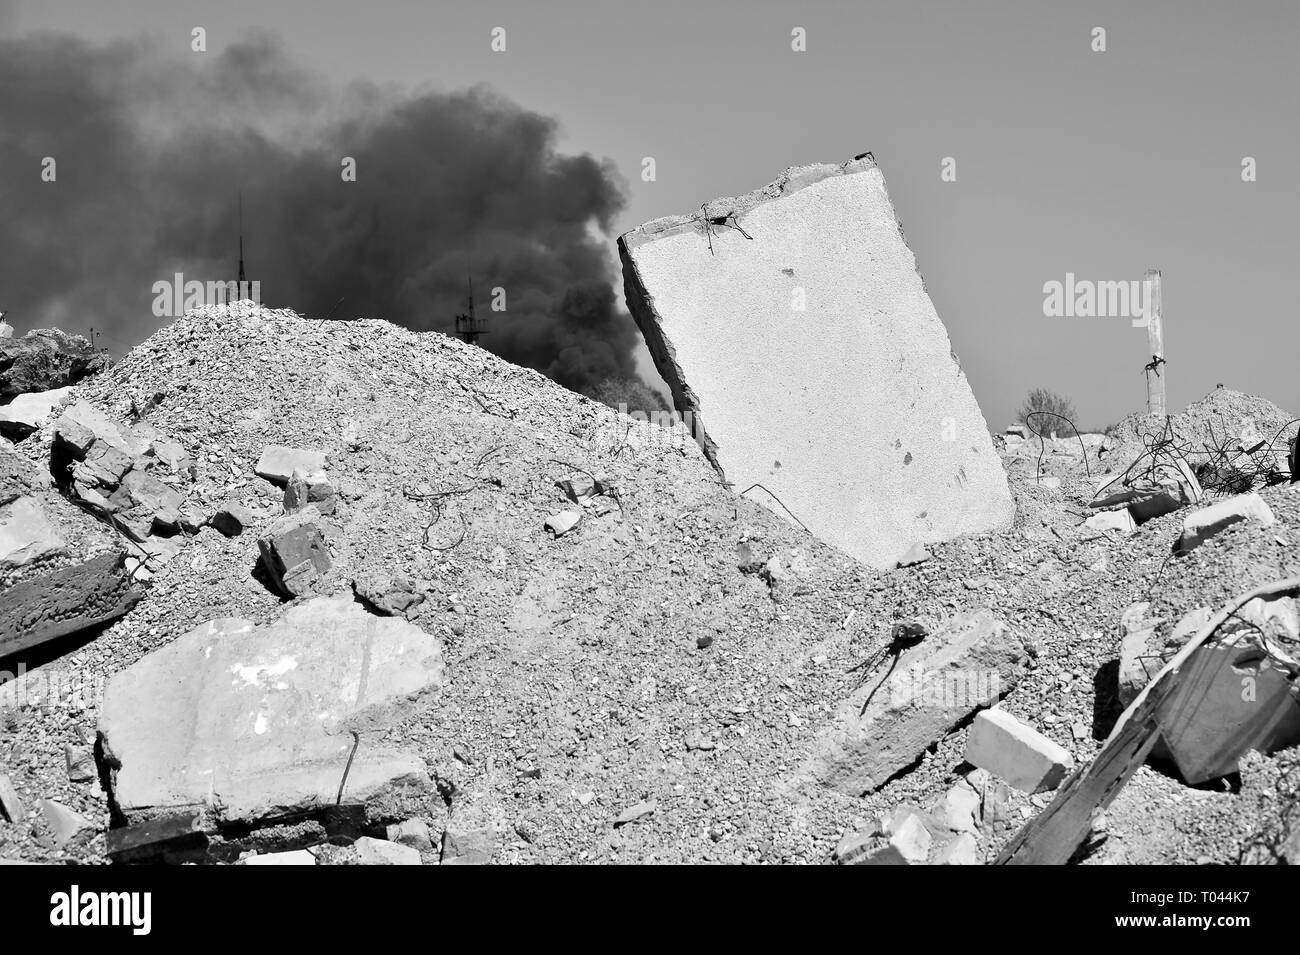 Concrete slab stuck in the ground against the background of a Smoking electrical substation. A symbol of the devastation of war. Background, place of  - Stock Image